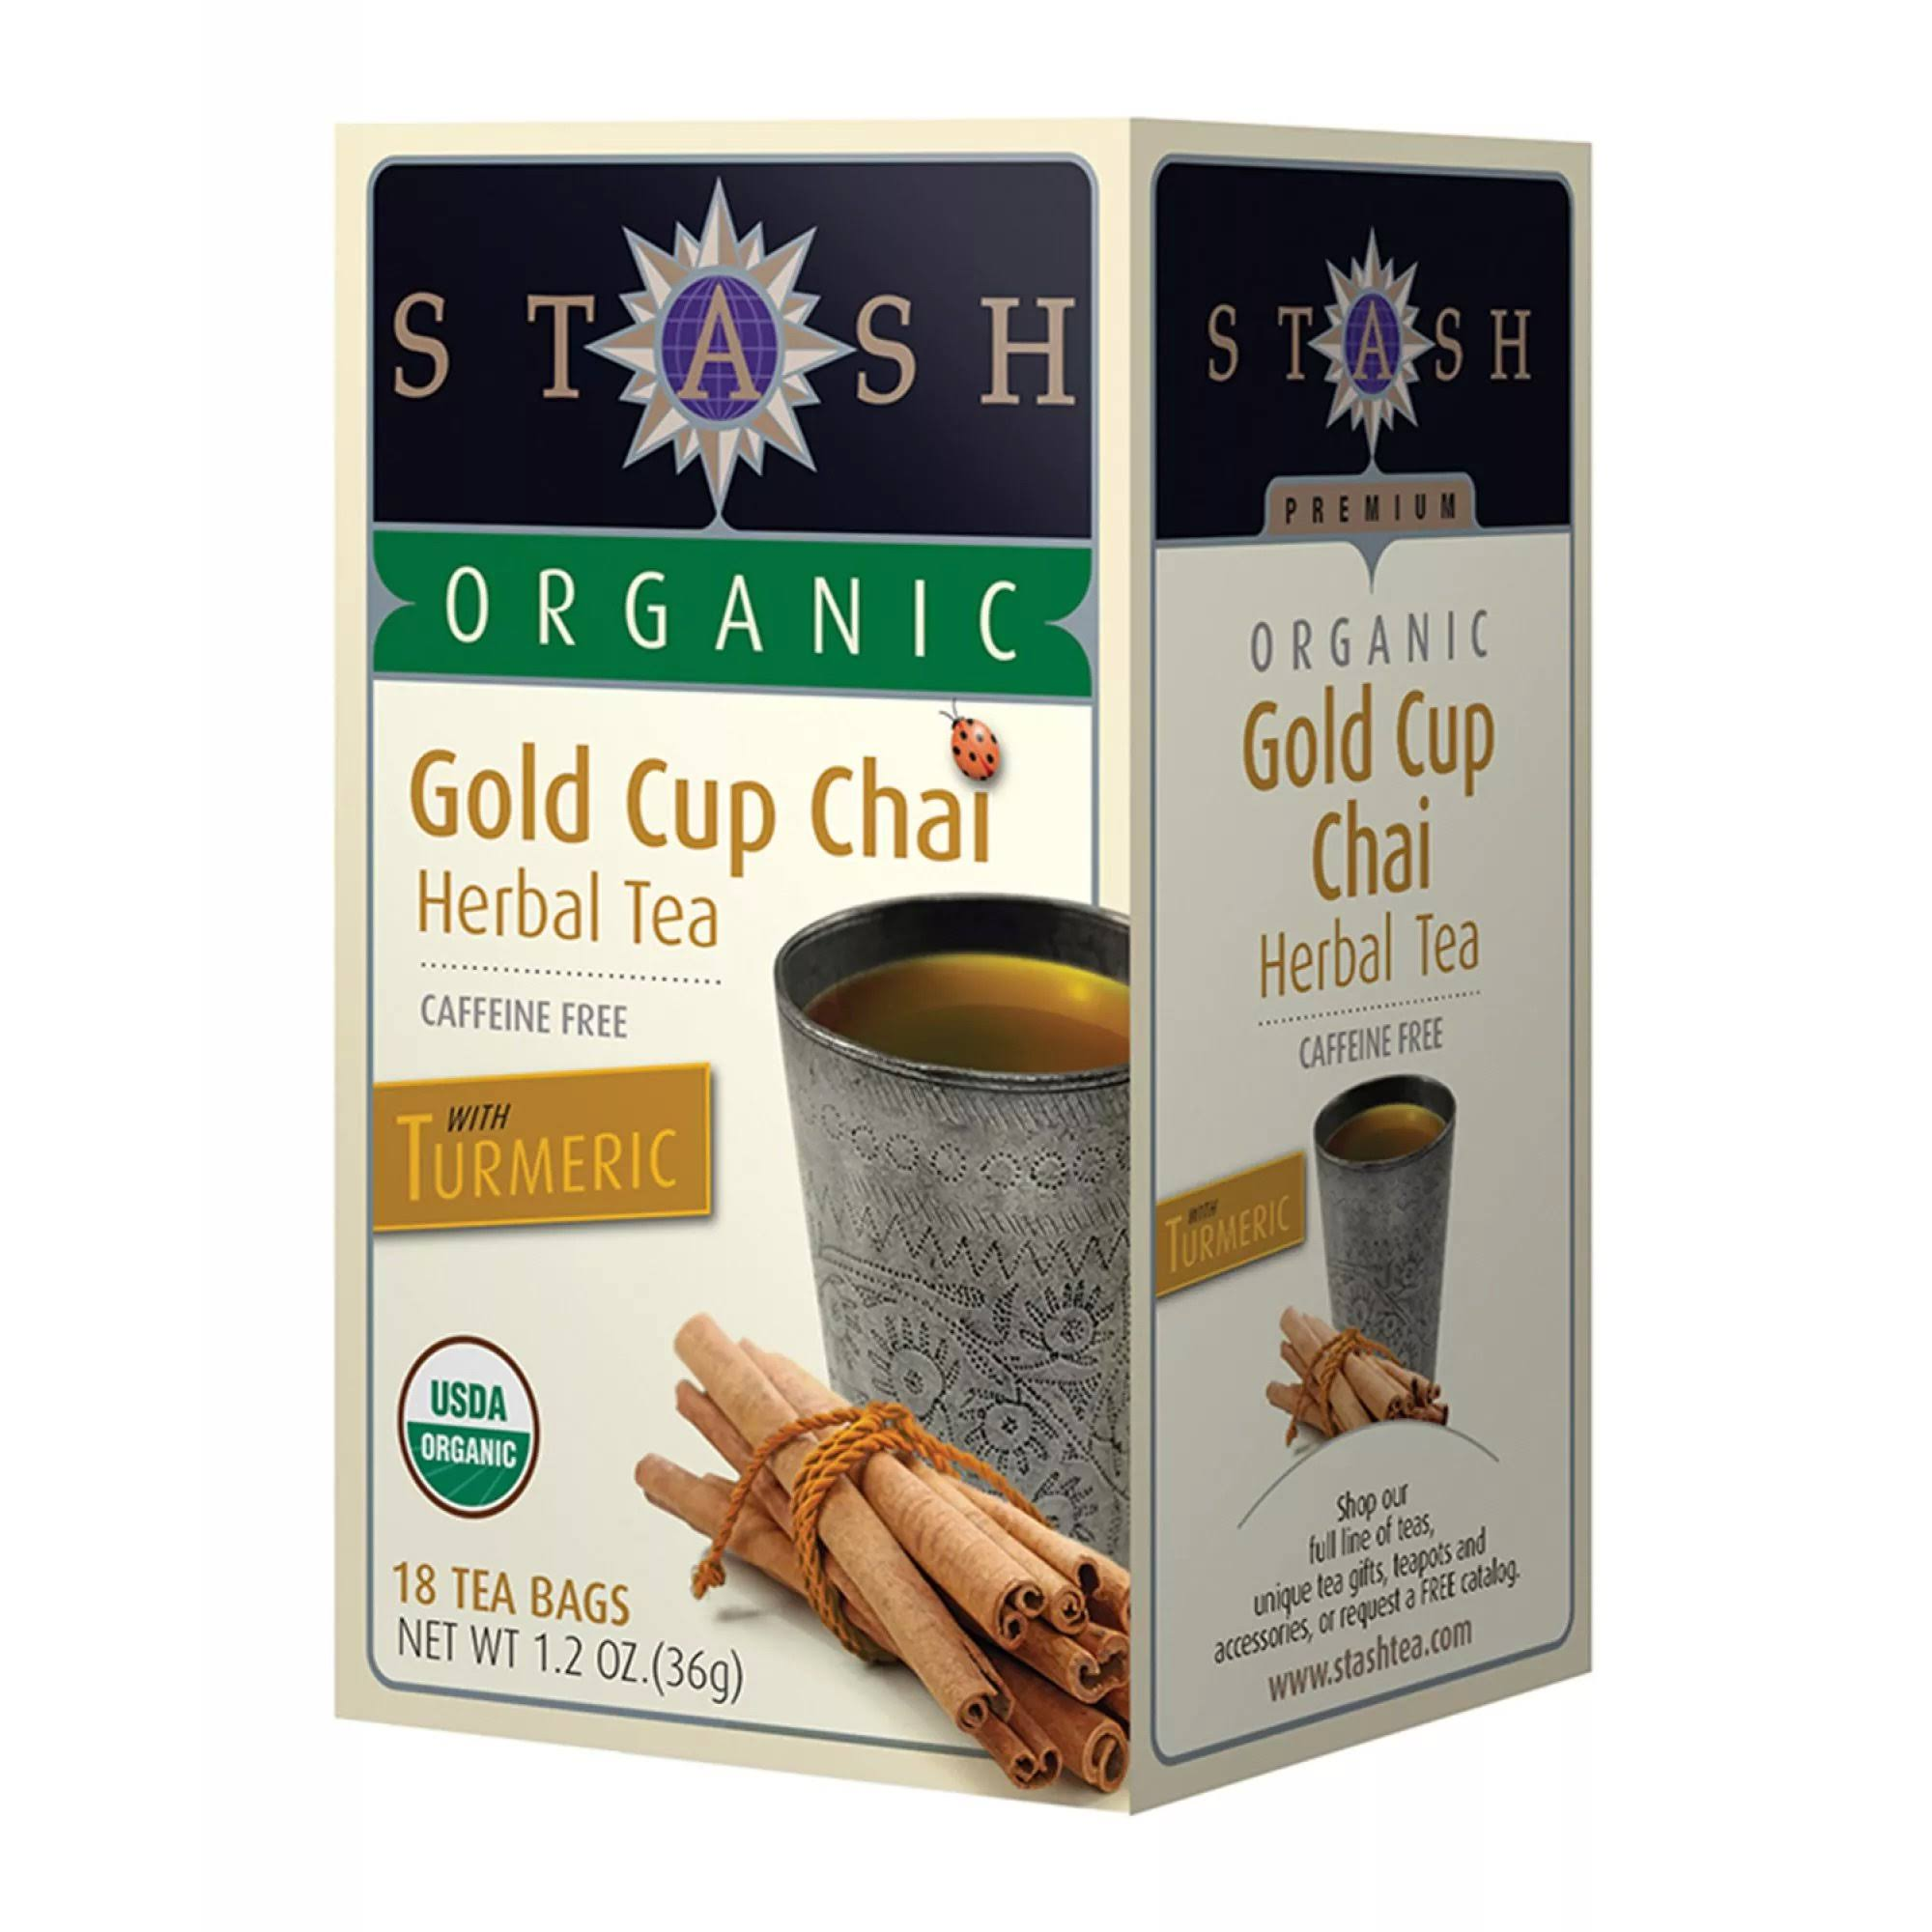 Stash Turmeric Organic Caffeine Free Gold Cup Chai Herbal Tea